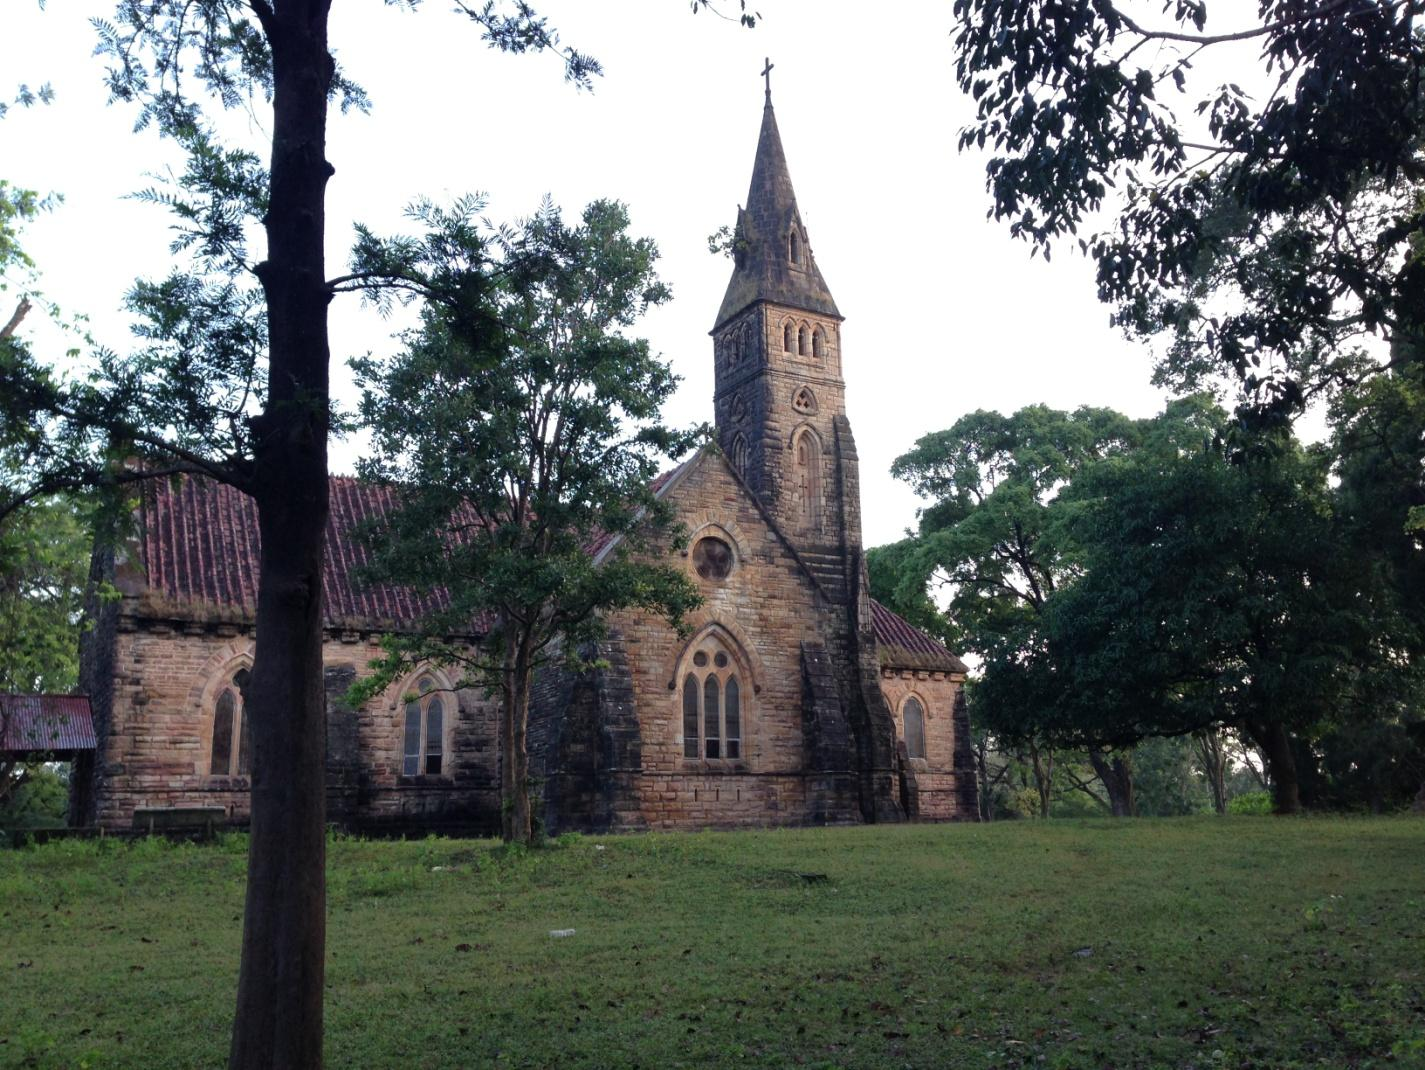 C:\Users\user\Desktop\Reacho\pics\Catholic_Church_at_Pachmarhi.JPG